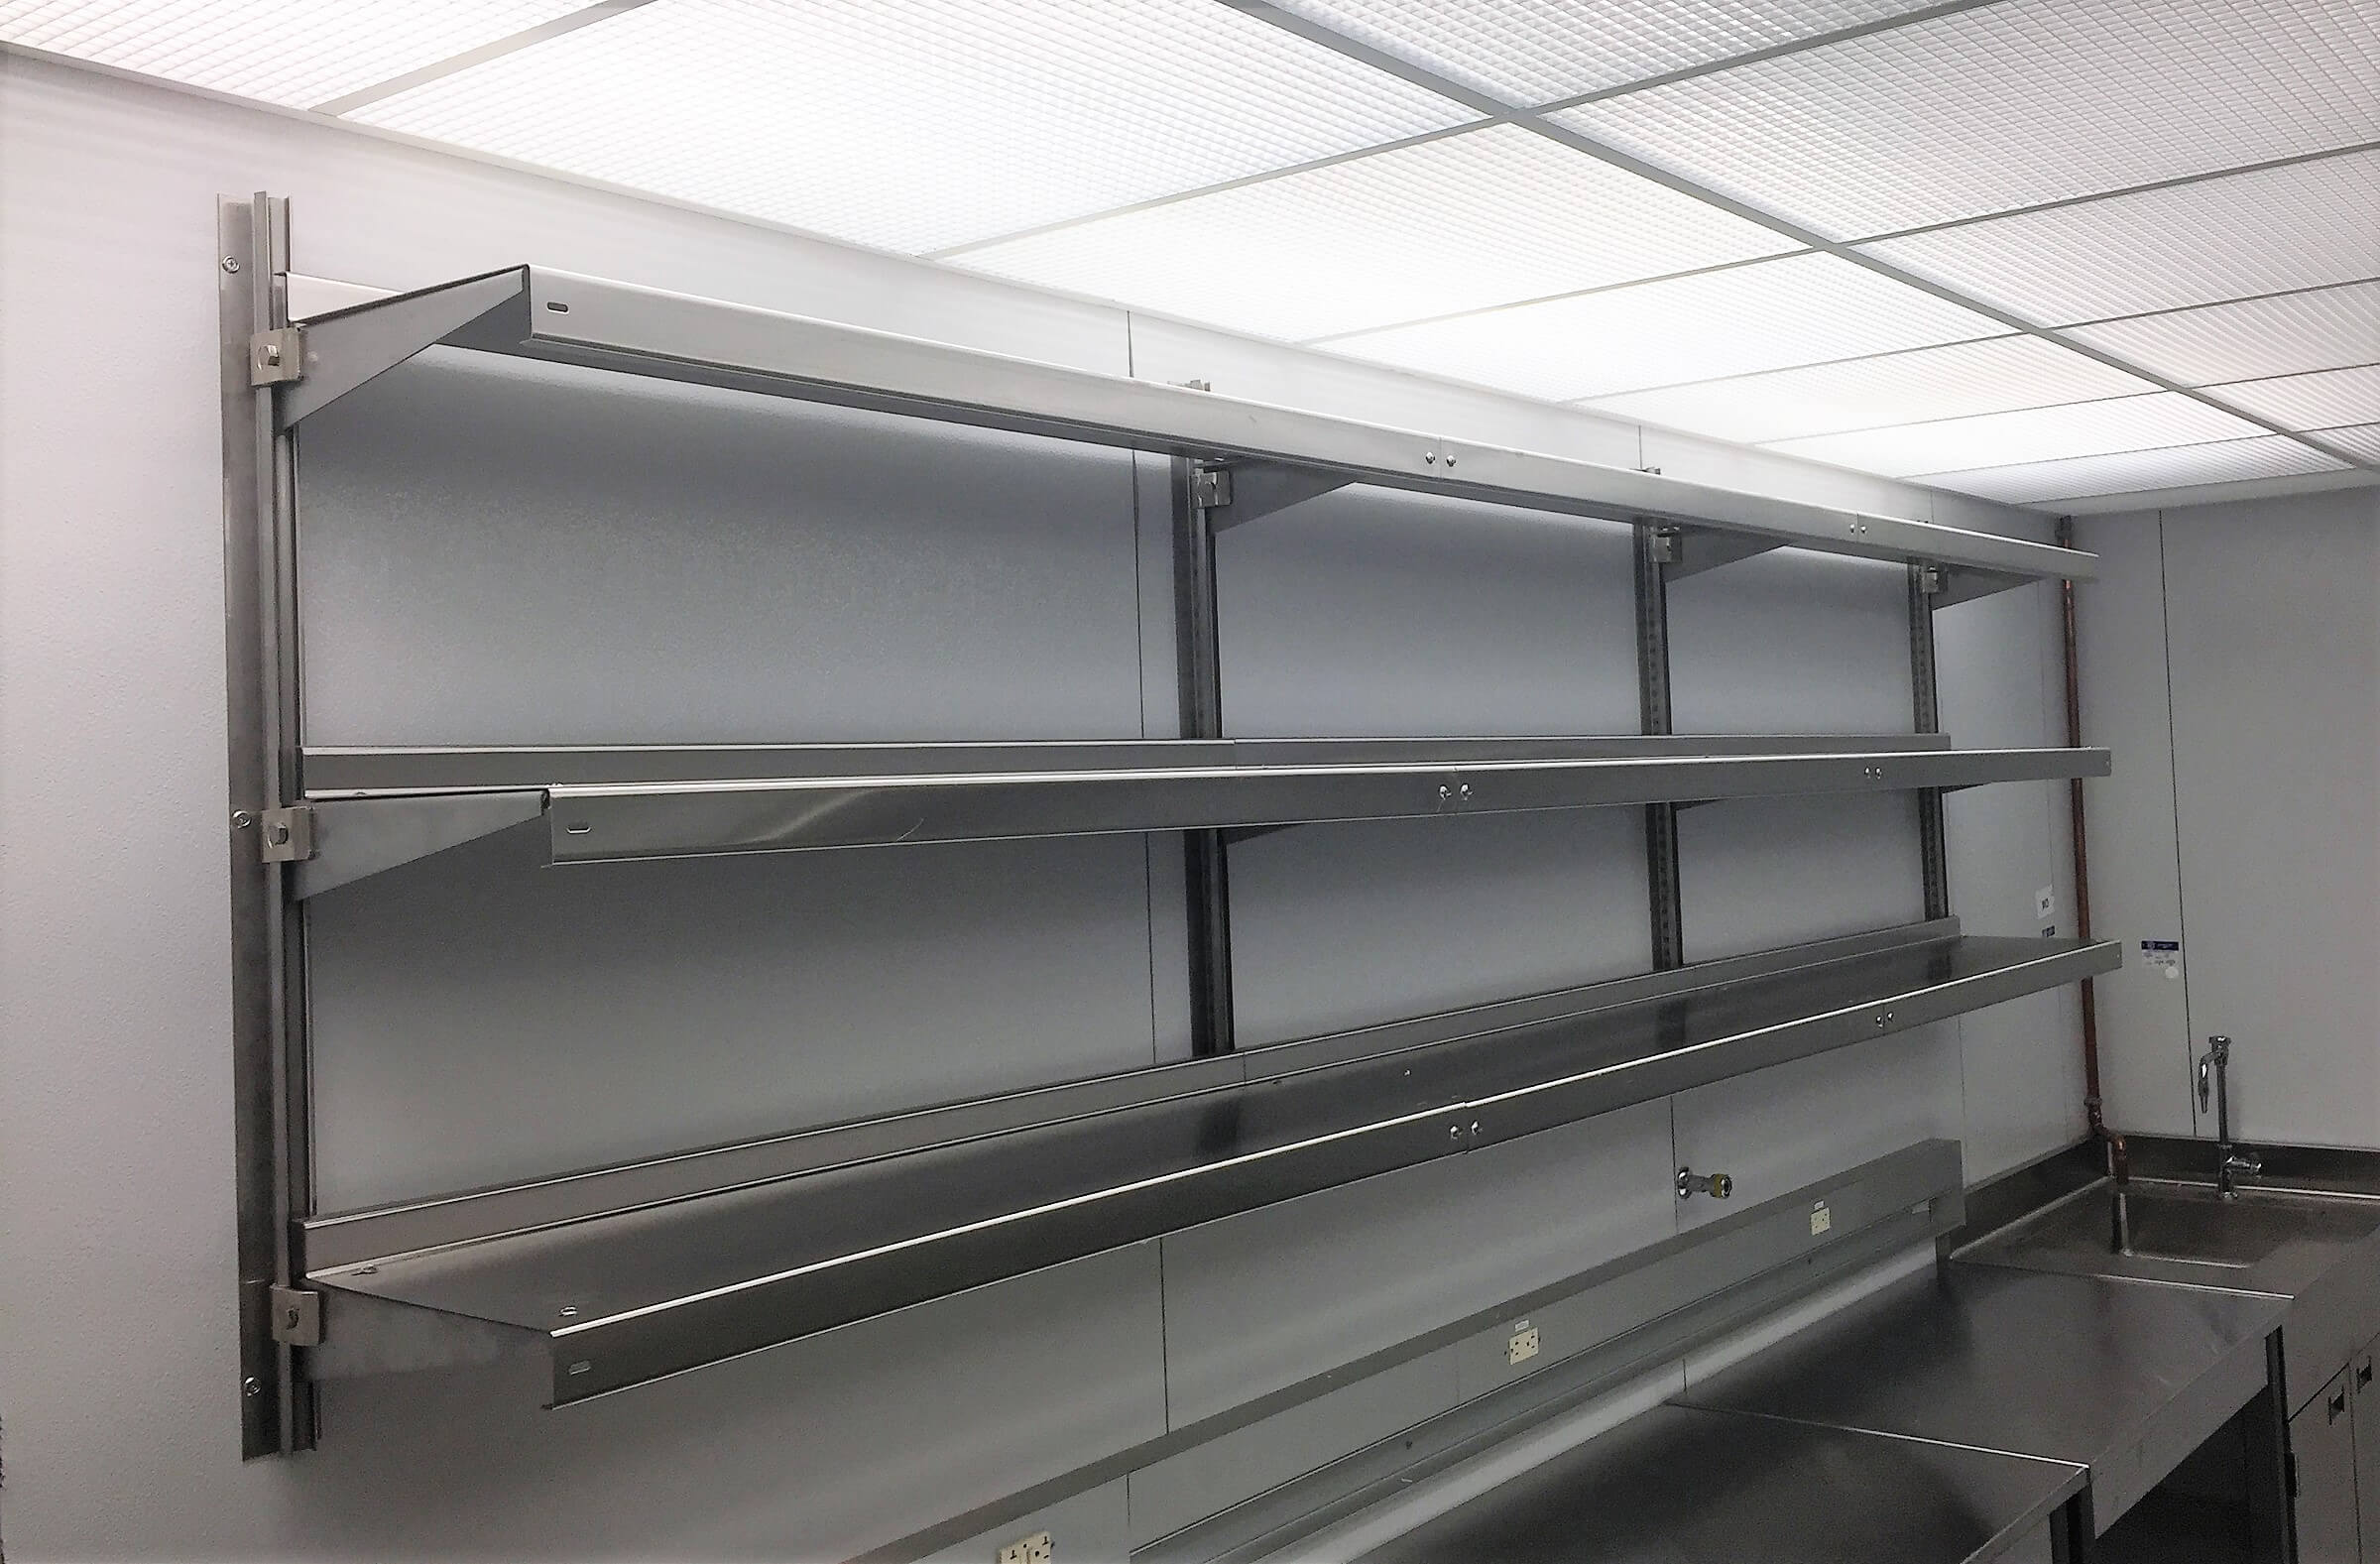 Stainless Steel Laboratory Shelving by E-Z Shelving Systems, Inc.